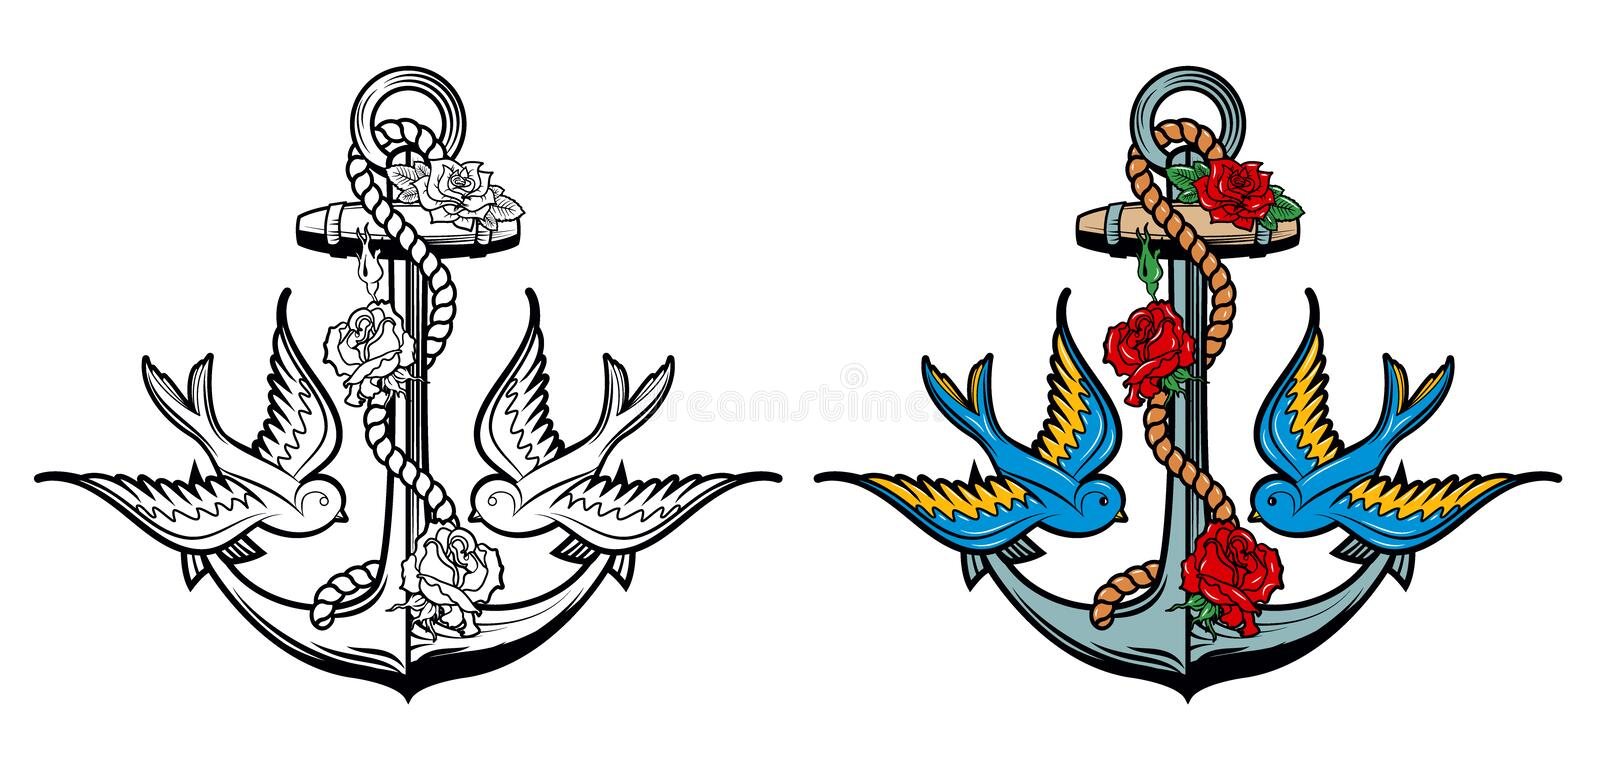 Sailor spirit. Anchor with roses and birds on grunge background. Old school tattoo style anchor. Vector illustration royalty free illustration